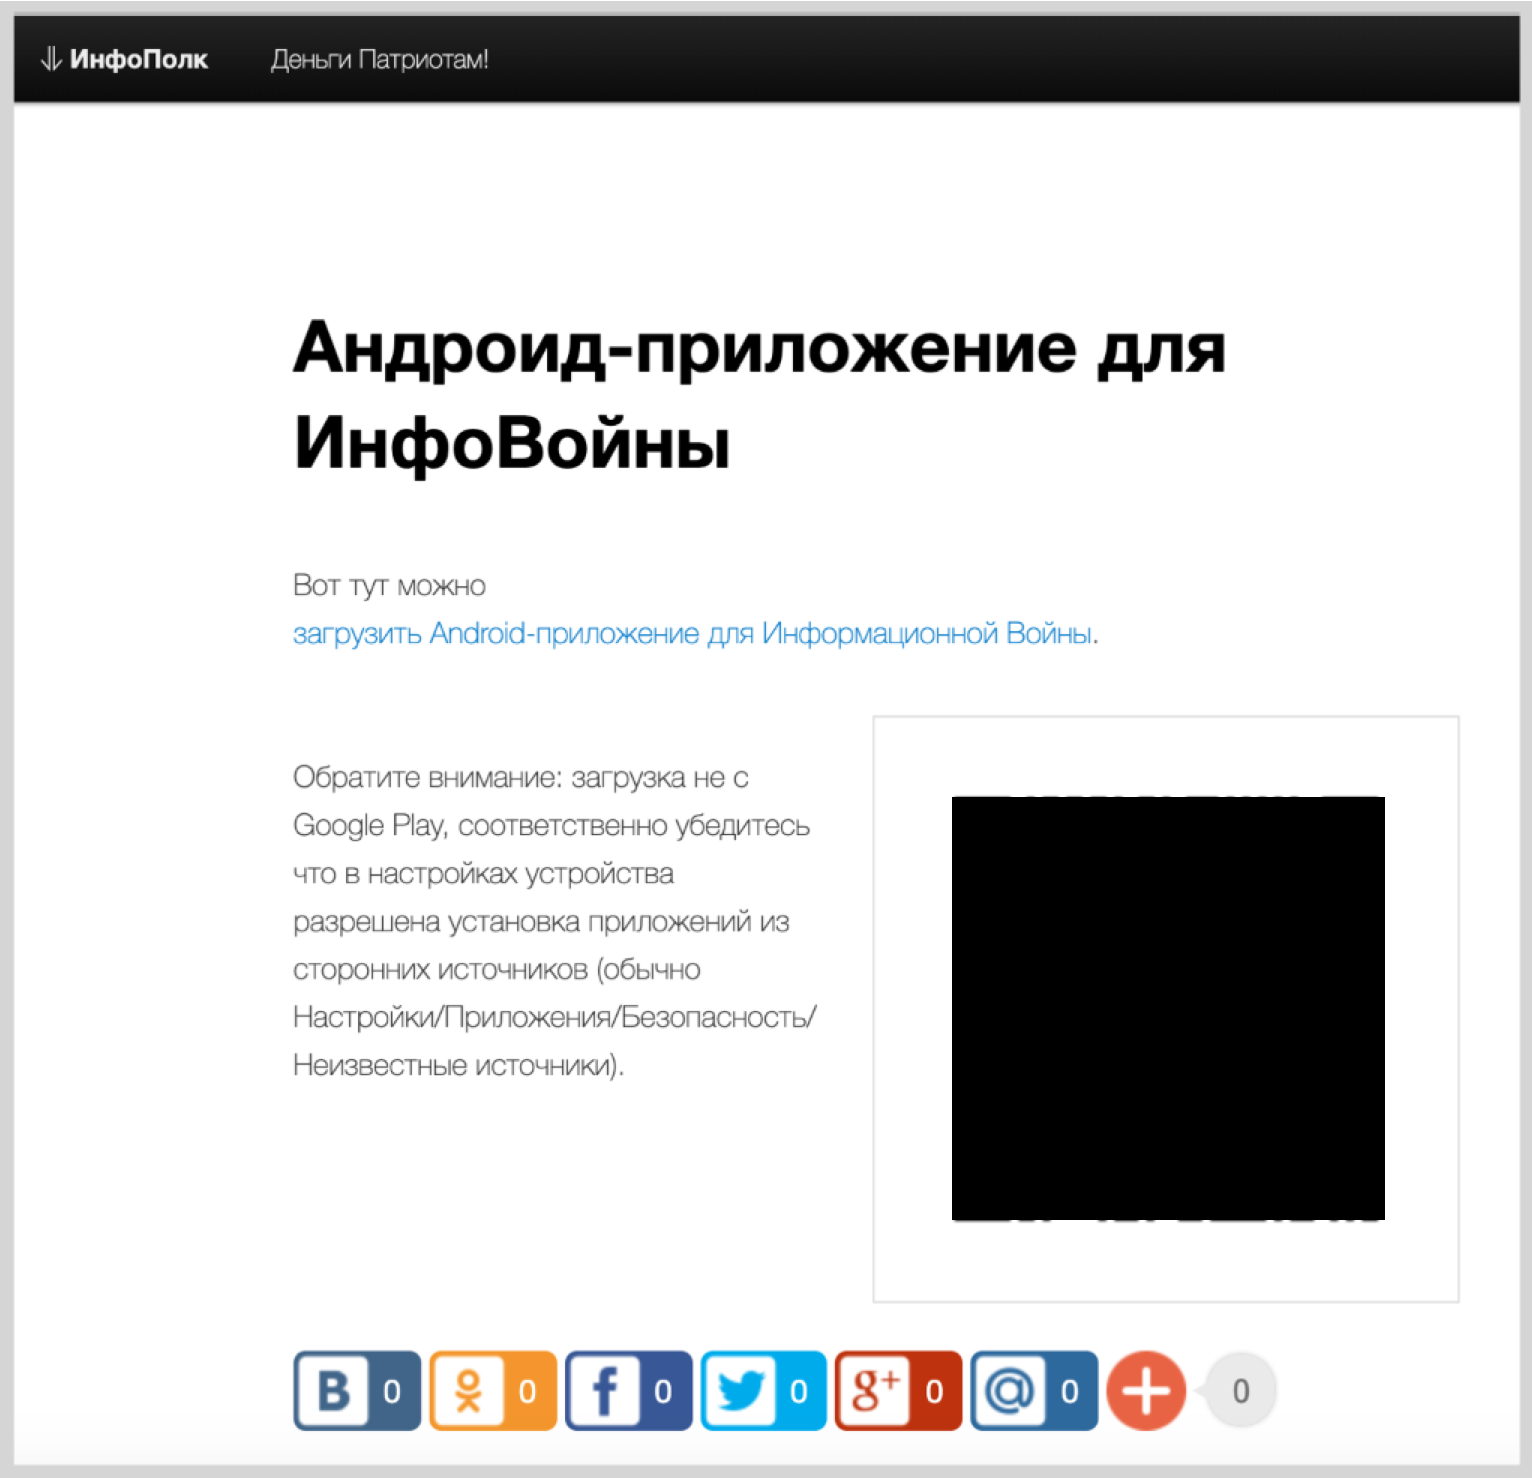 """Russian """"Info-War"""" Pages Removed - DFRLab - Medium"""